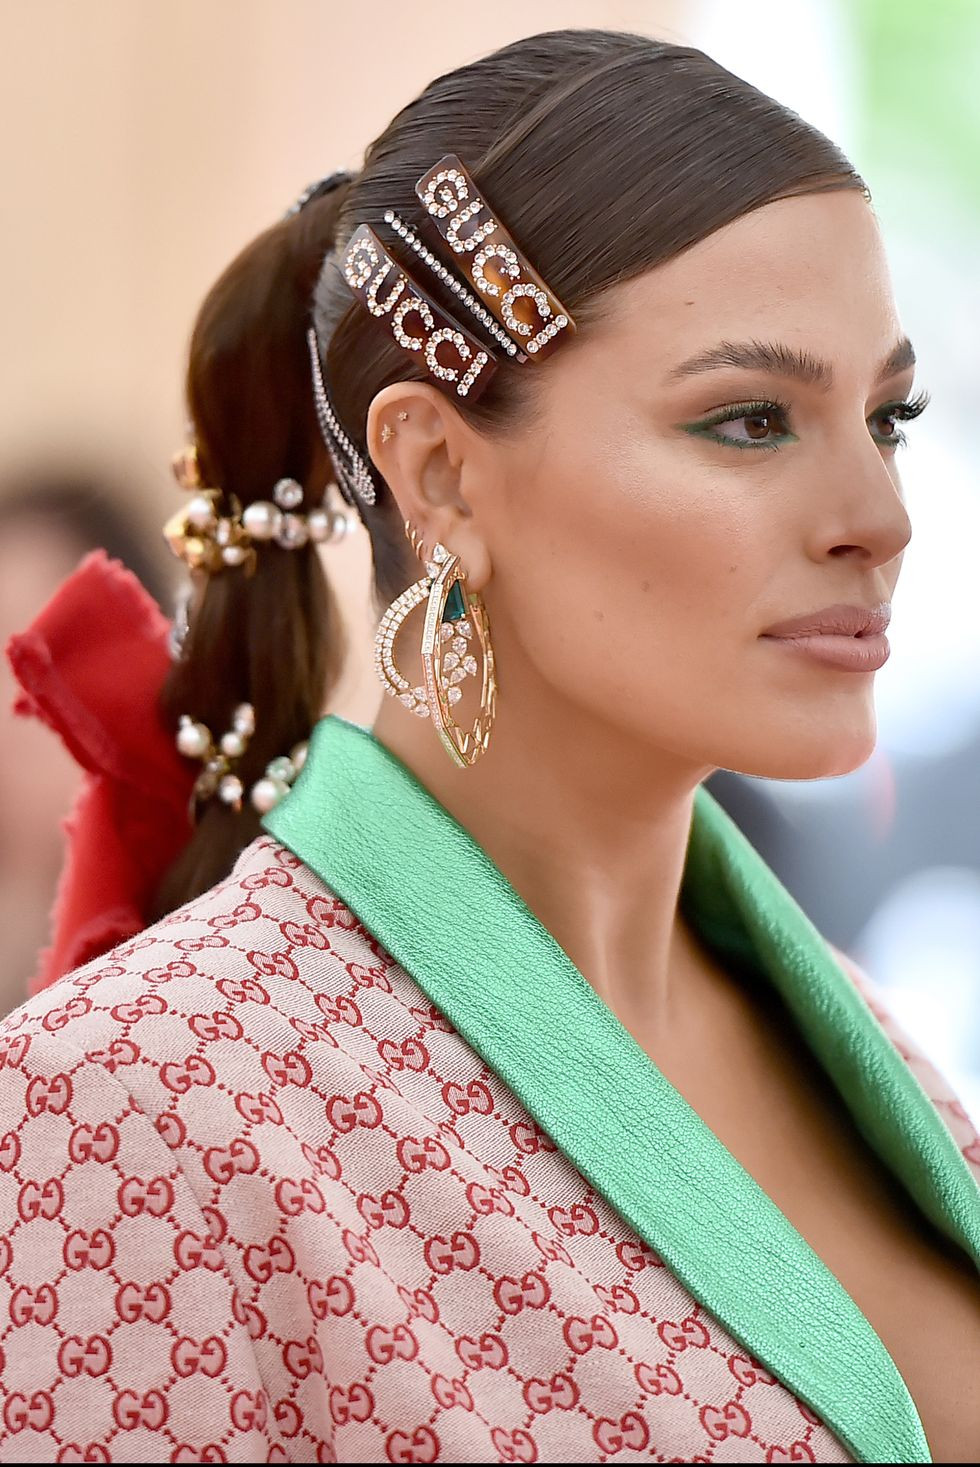 ashley-graham-attends-the-2019-met-gala-celebrating-camp-news-photo-1147411069-1560870696.jpg